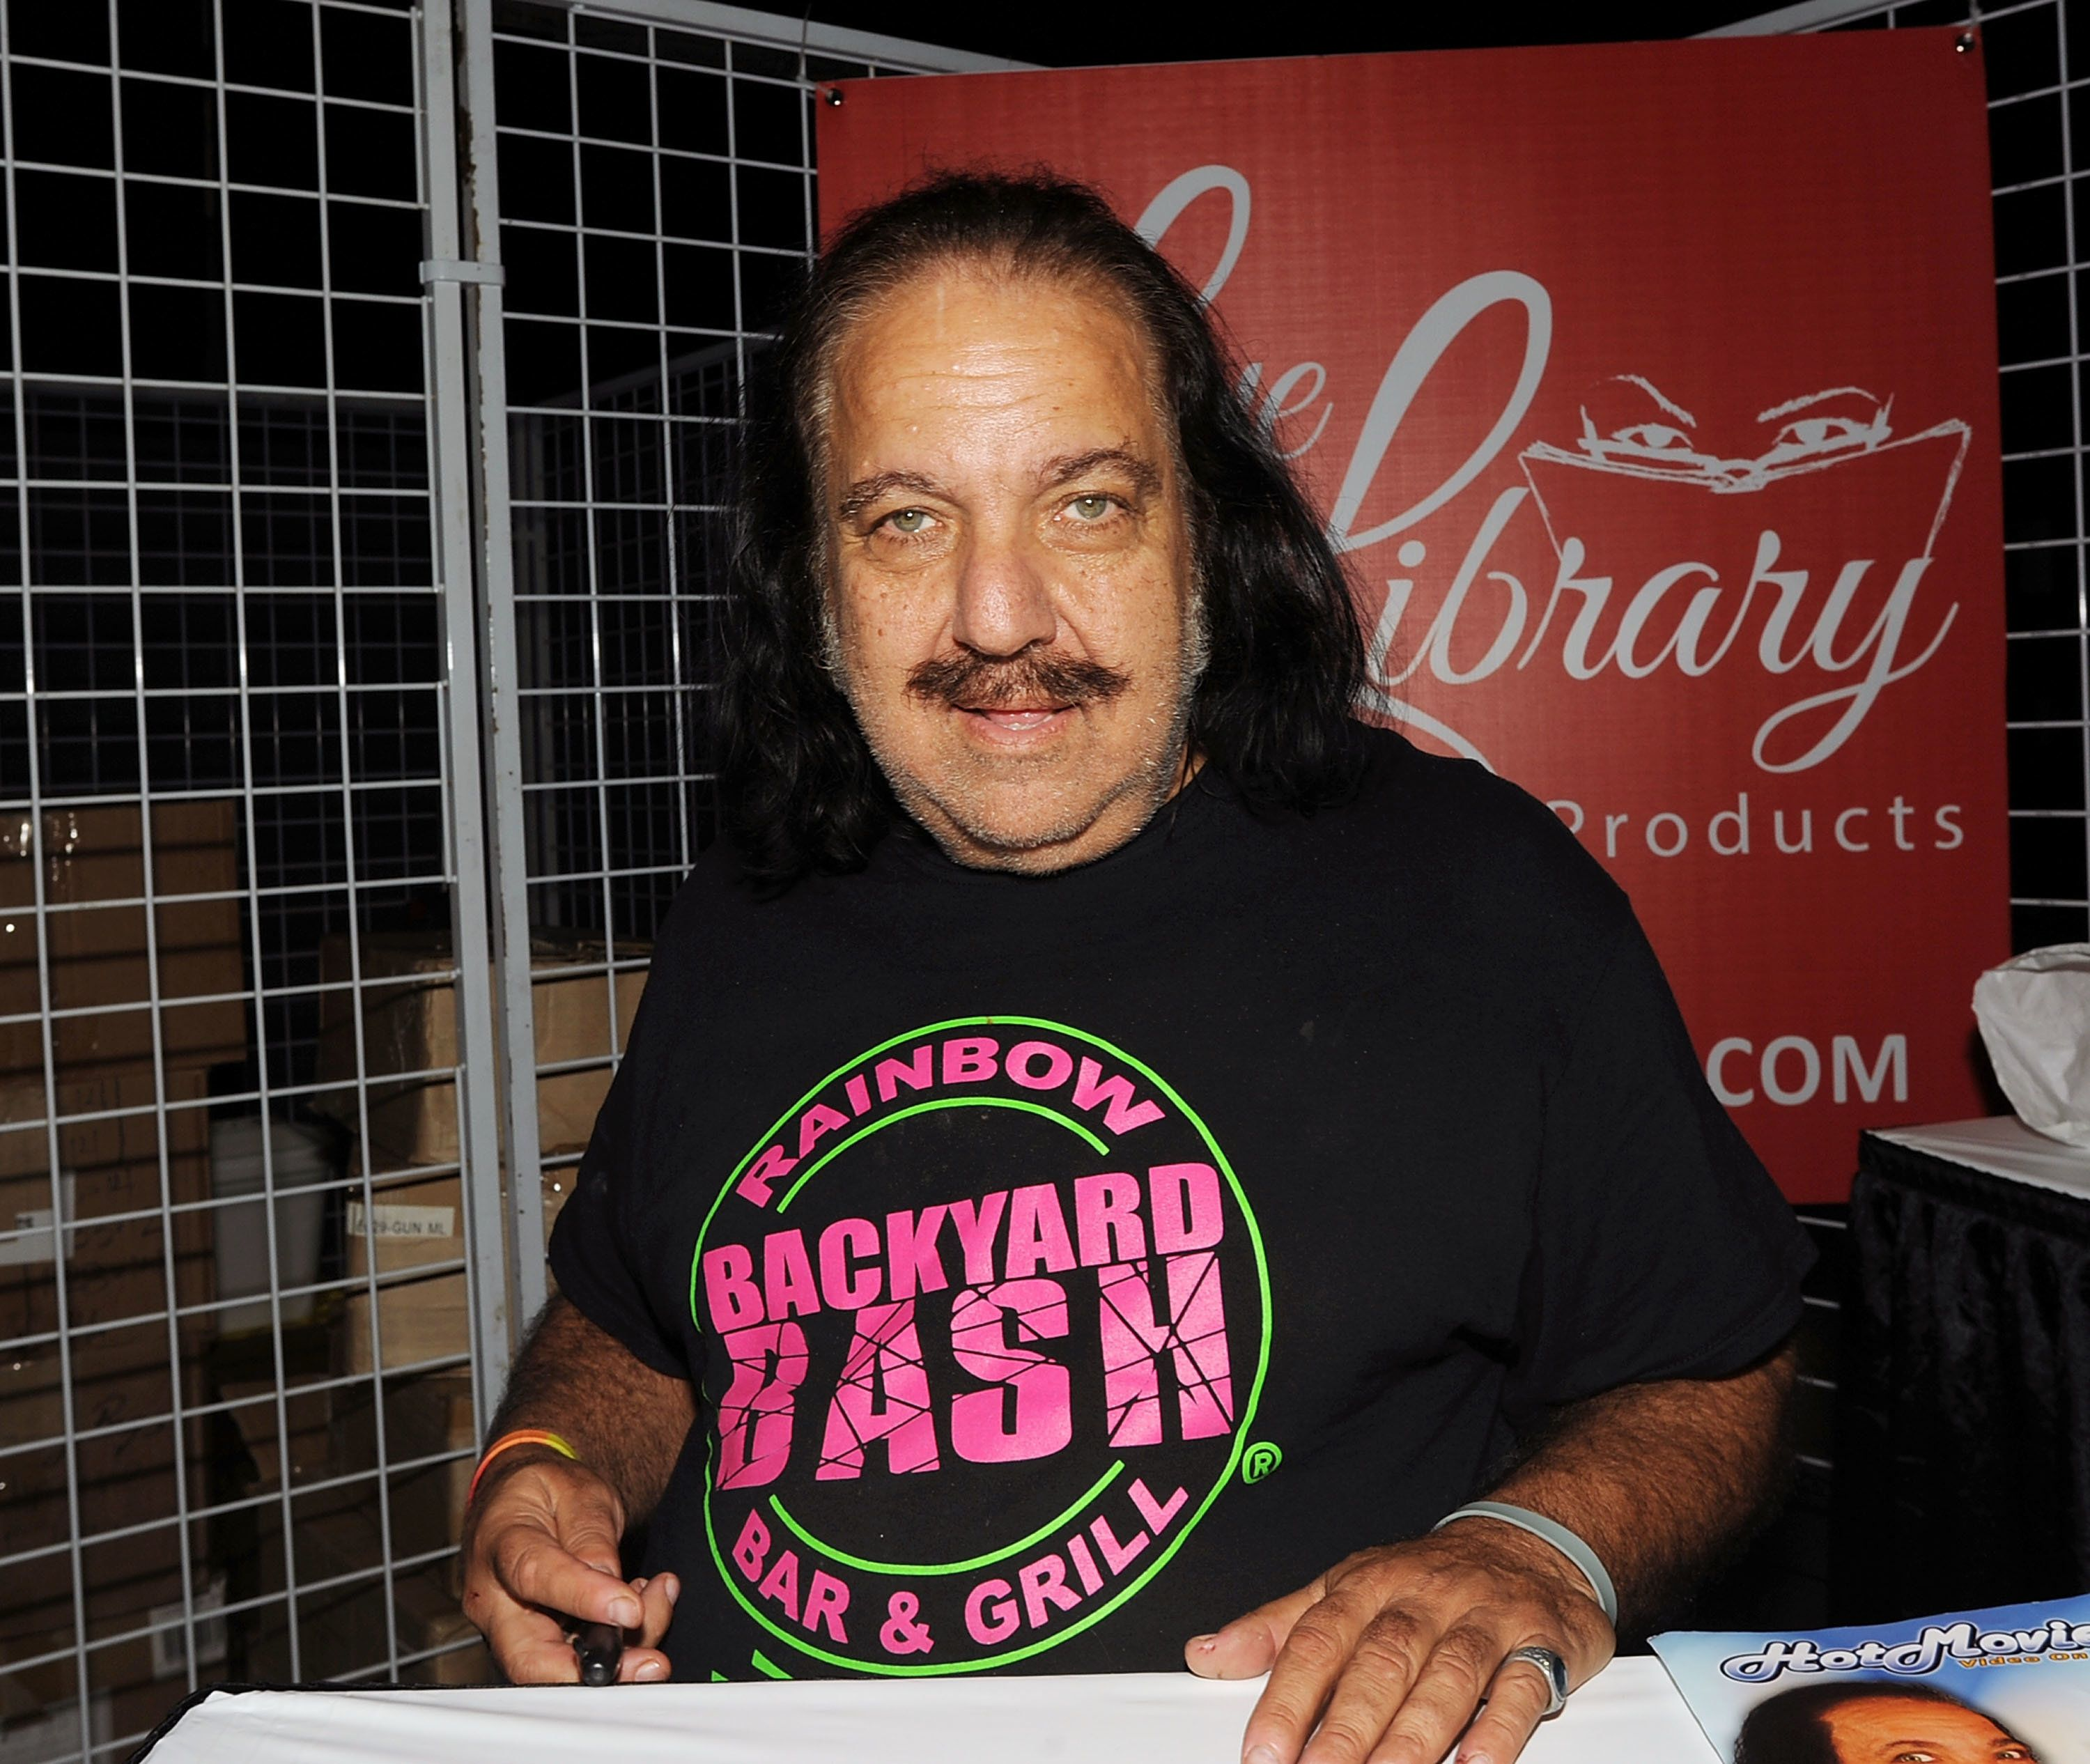 SOMERSET, NJ - NOVEMBER 04:  Ron Jeremy attends Exxotica 2016 at Garden State Exhibit Center on November 4, 2016 in Somerset, New Jersey.  (Photo by Bobby Bank/Getty Images)